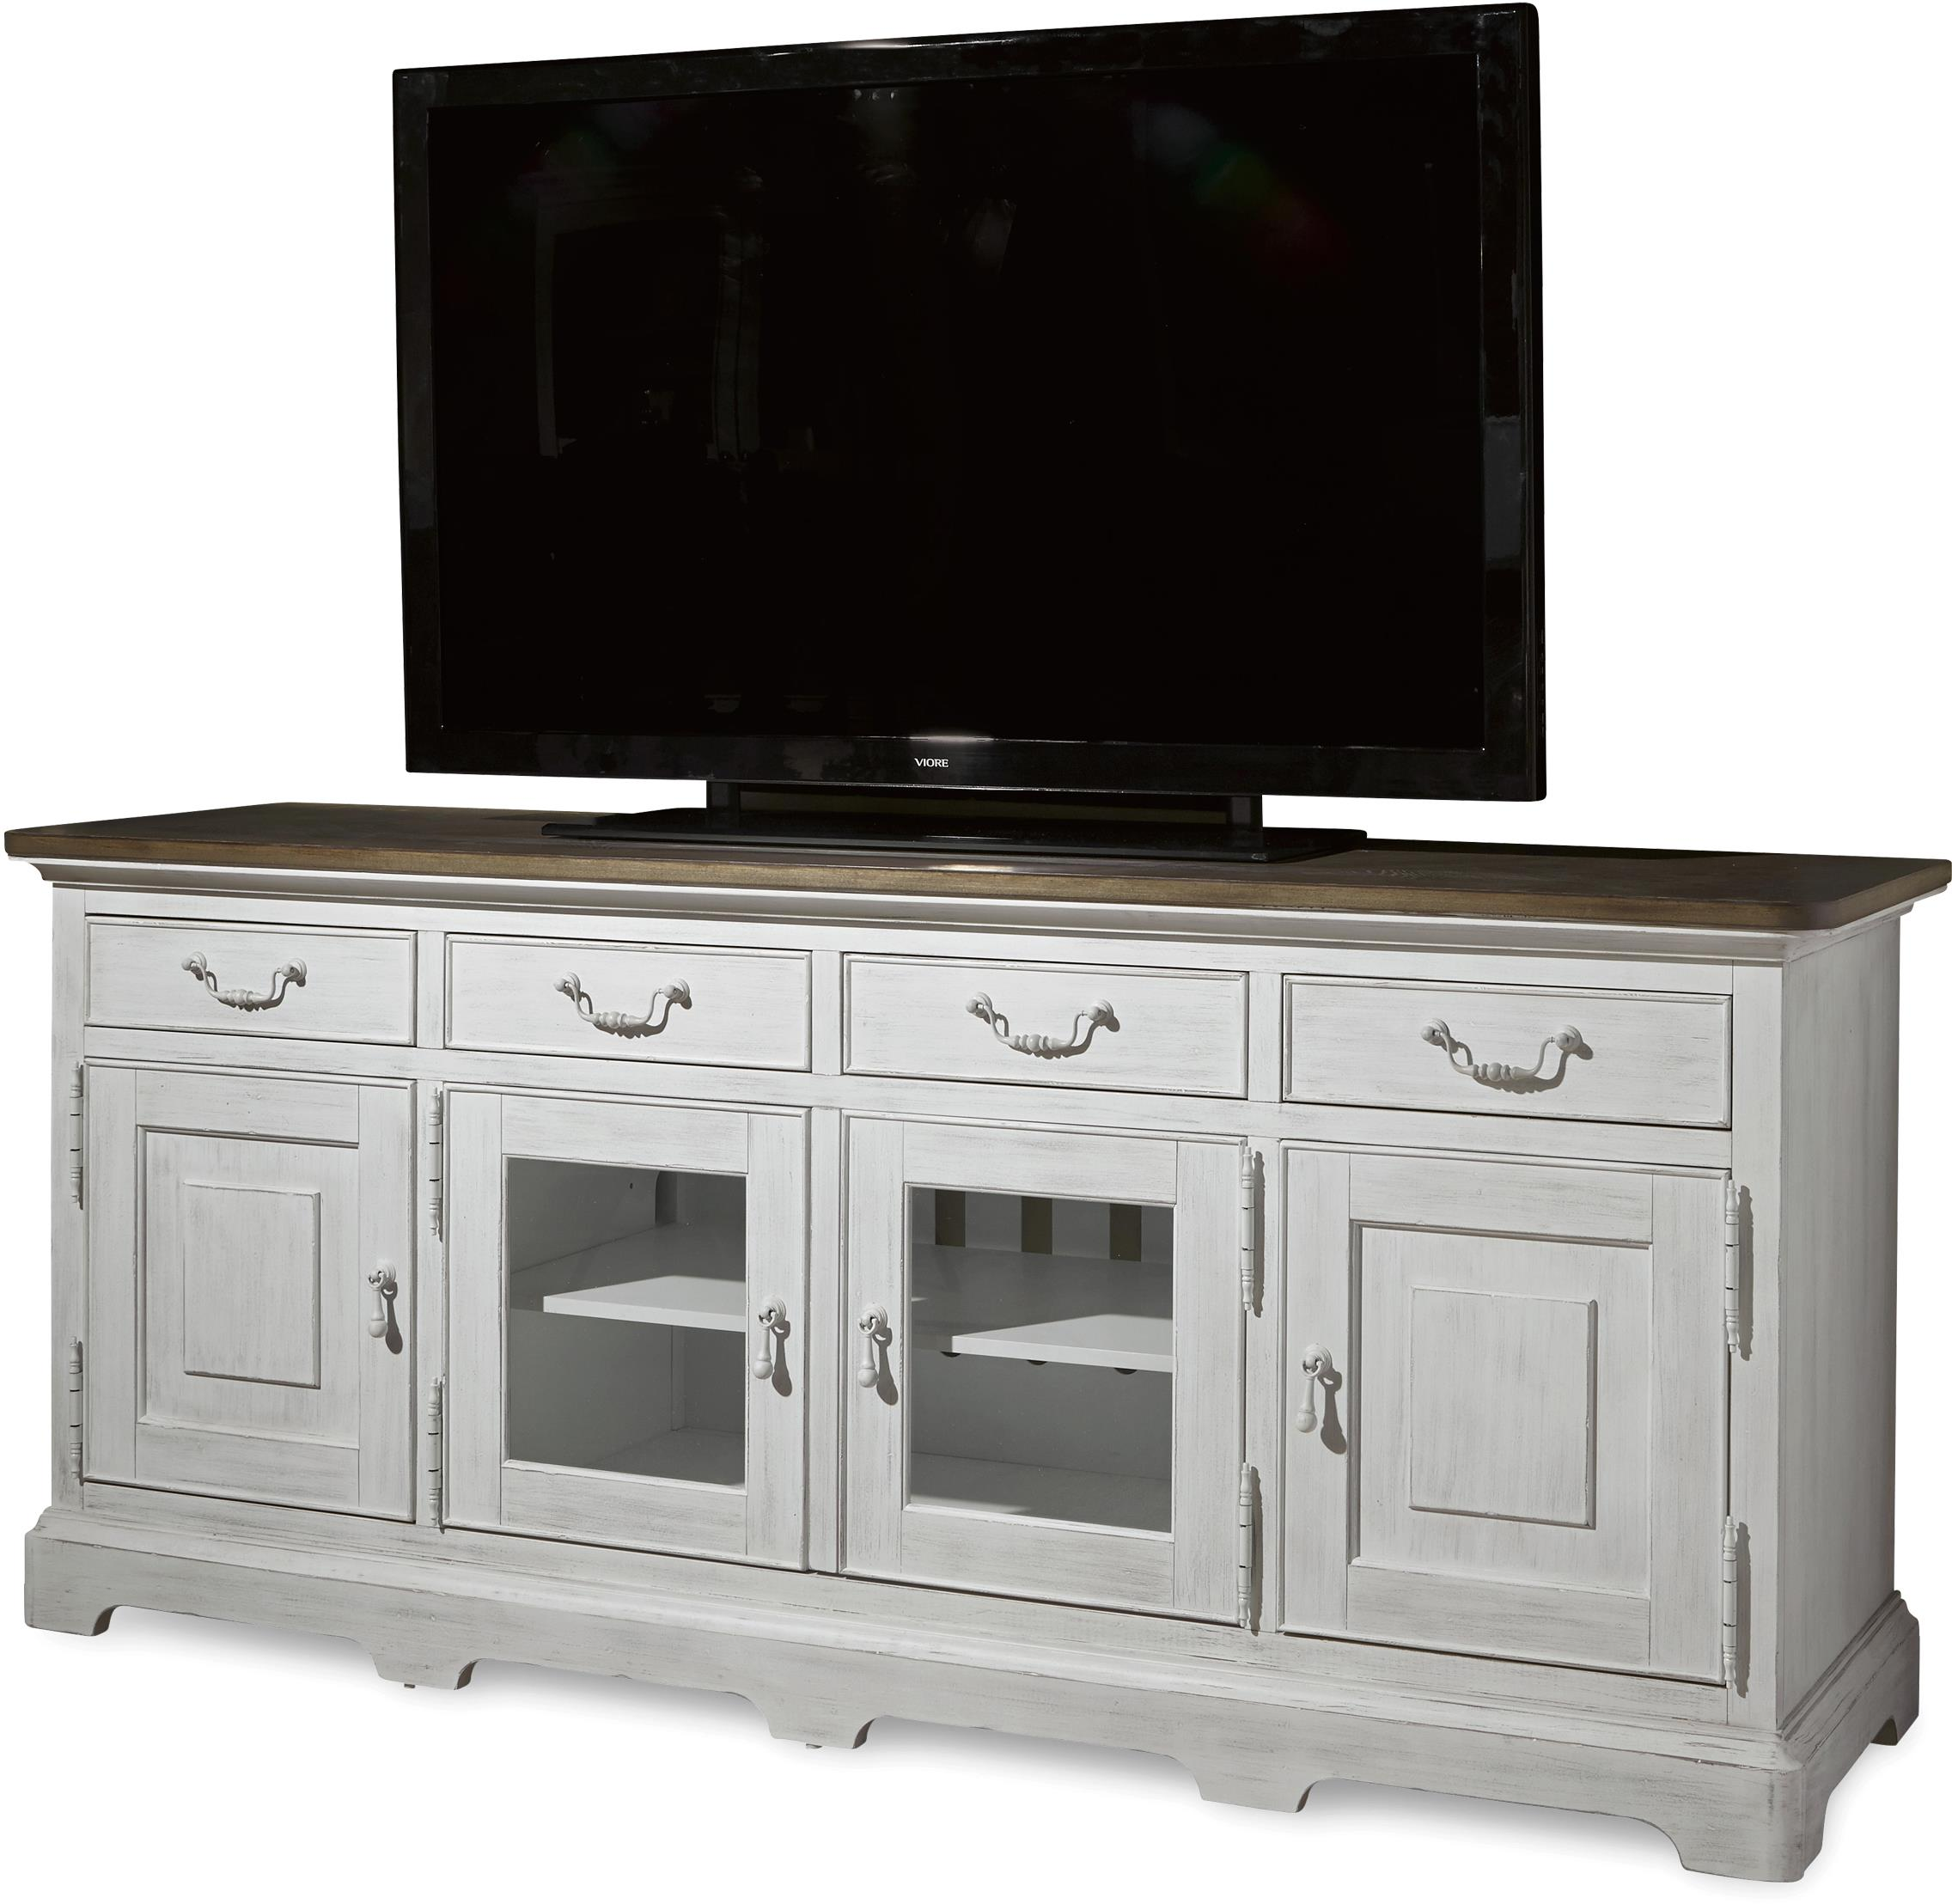 Paula Deen by Universal Dogwood Entertainment Console - Item Number: 597A966